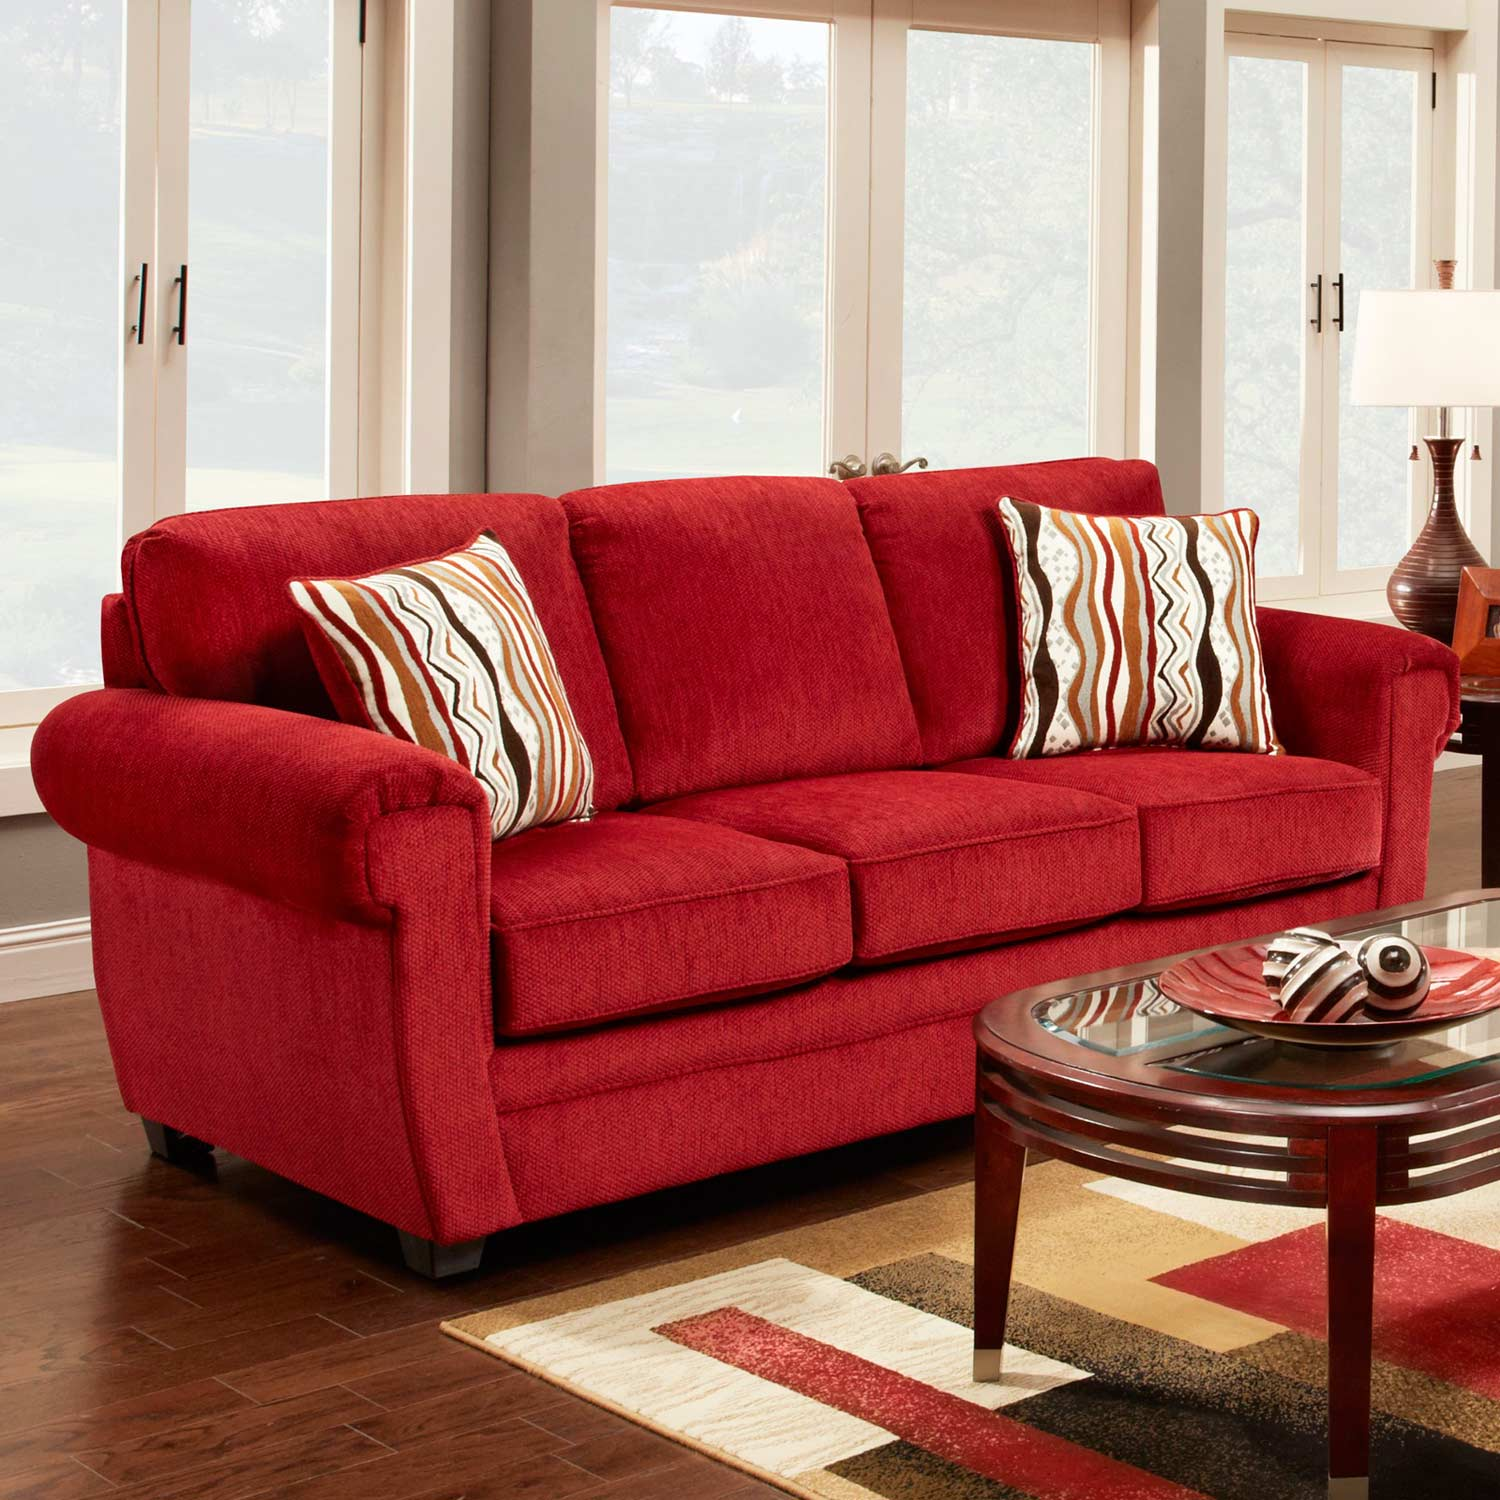 Leslie Pillow Back Fabric Sofa - Toss Pillows, Samson Red